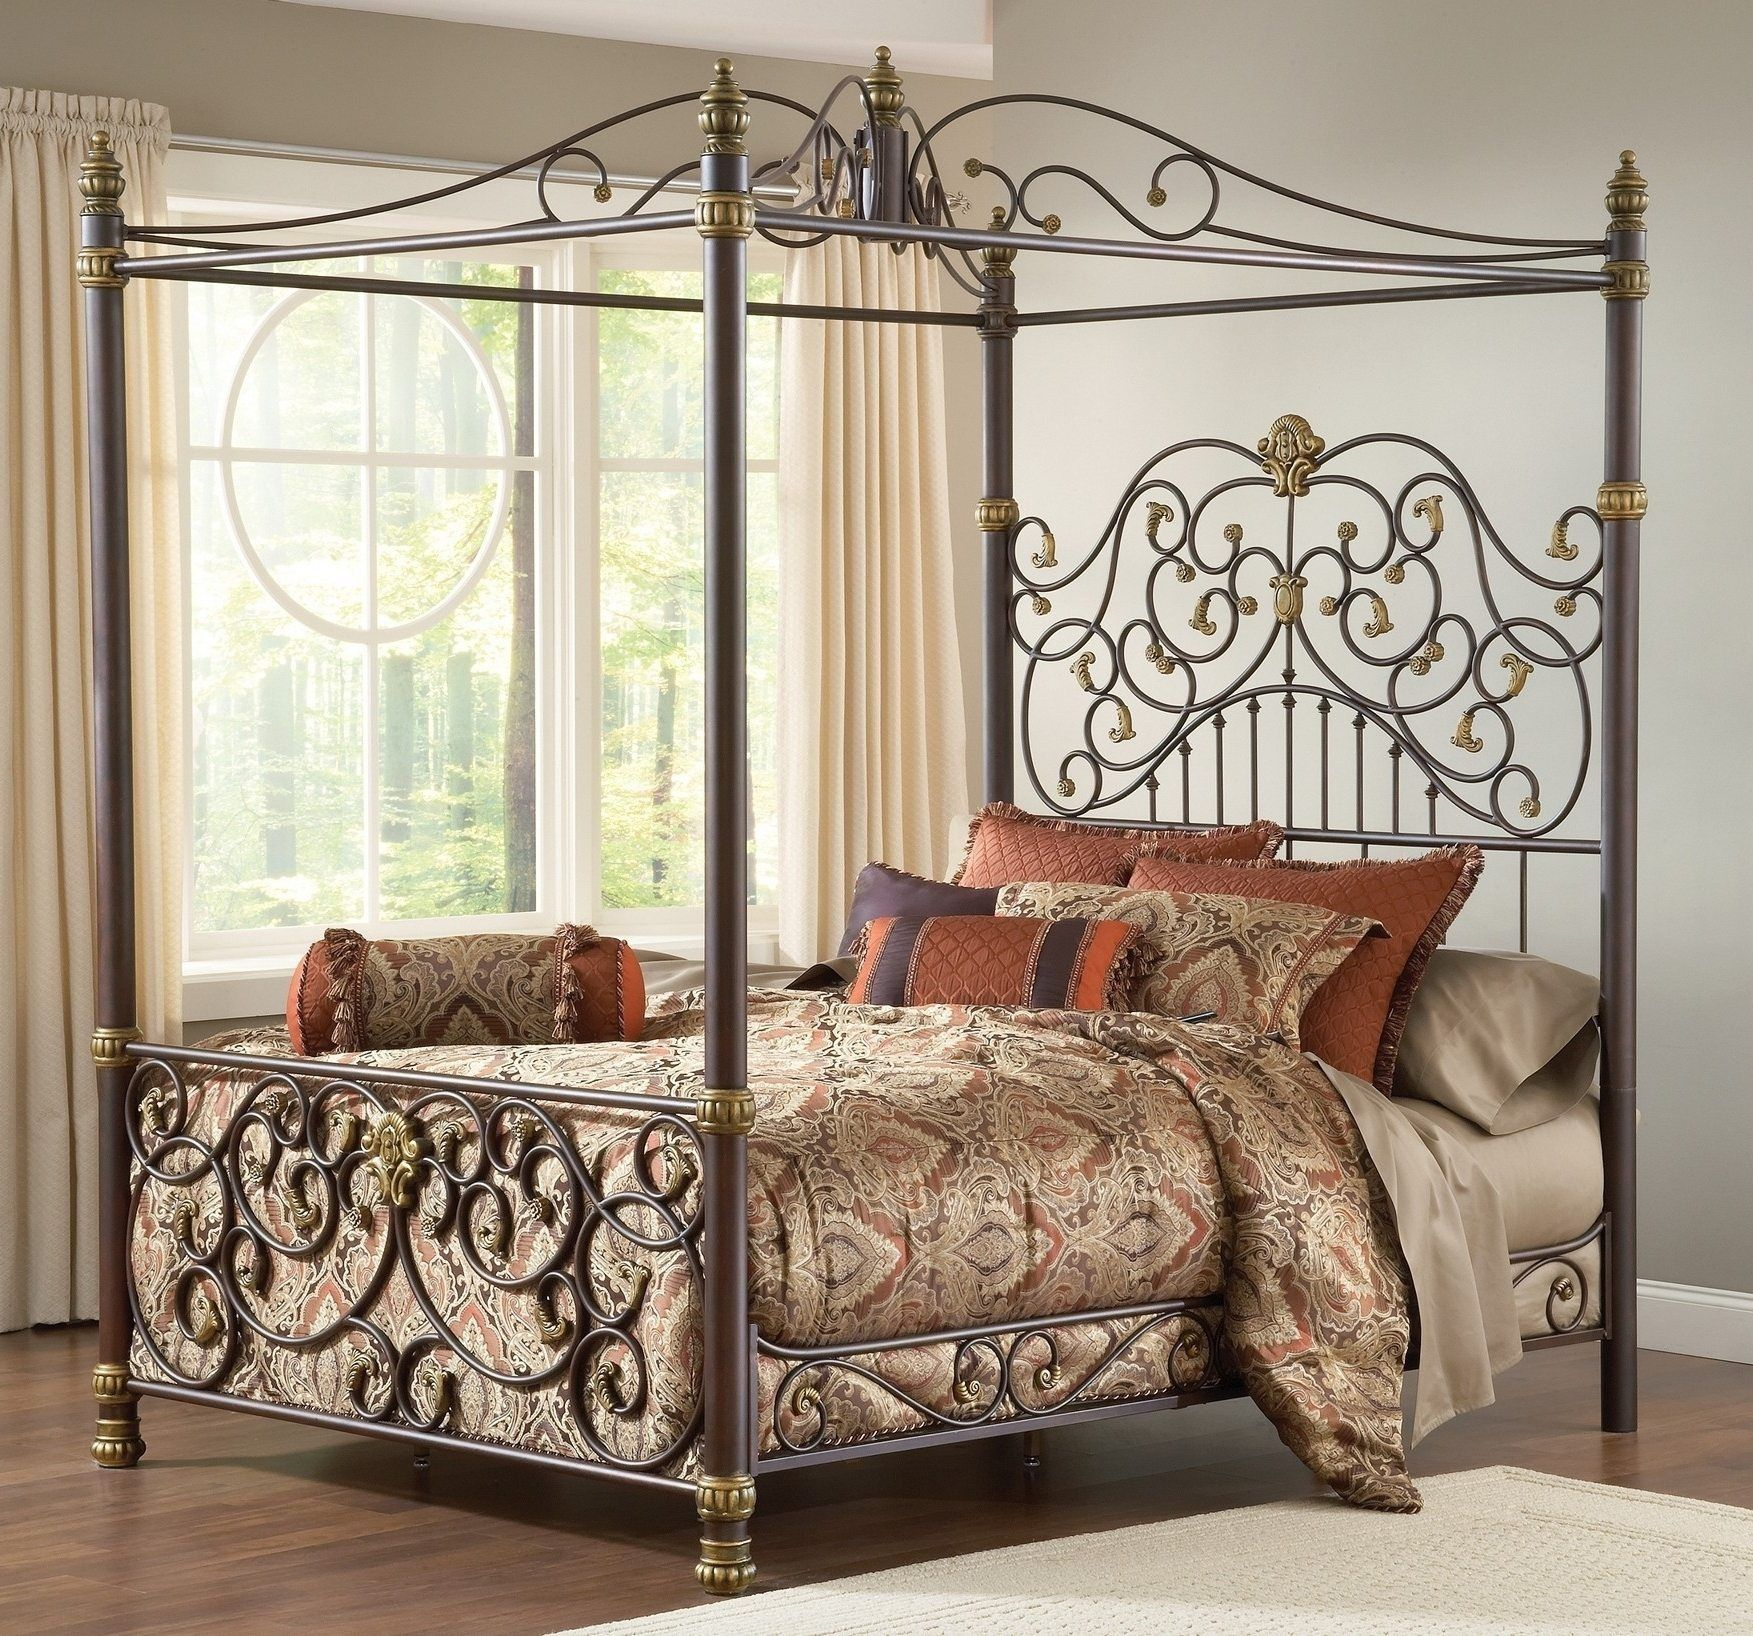 Image Result For Rustic Wood And Iron Beds Canopy Bed Frame Iron Canopy Bed Queen Canopy Bed